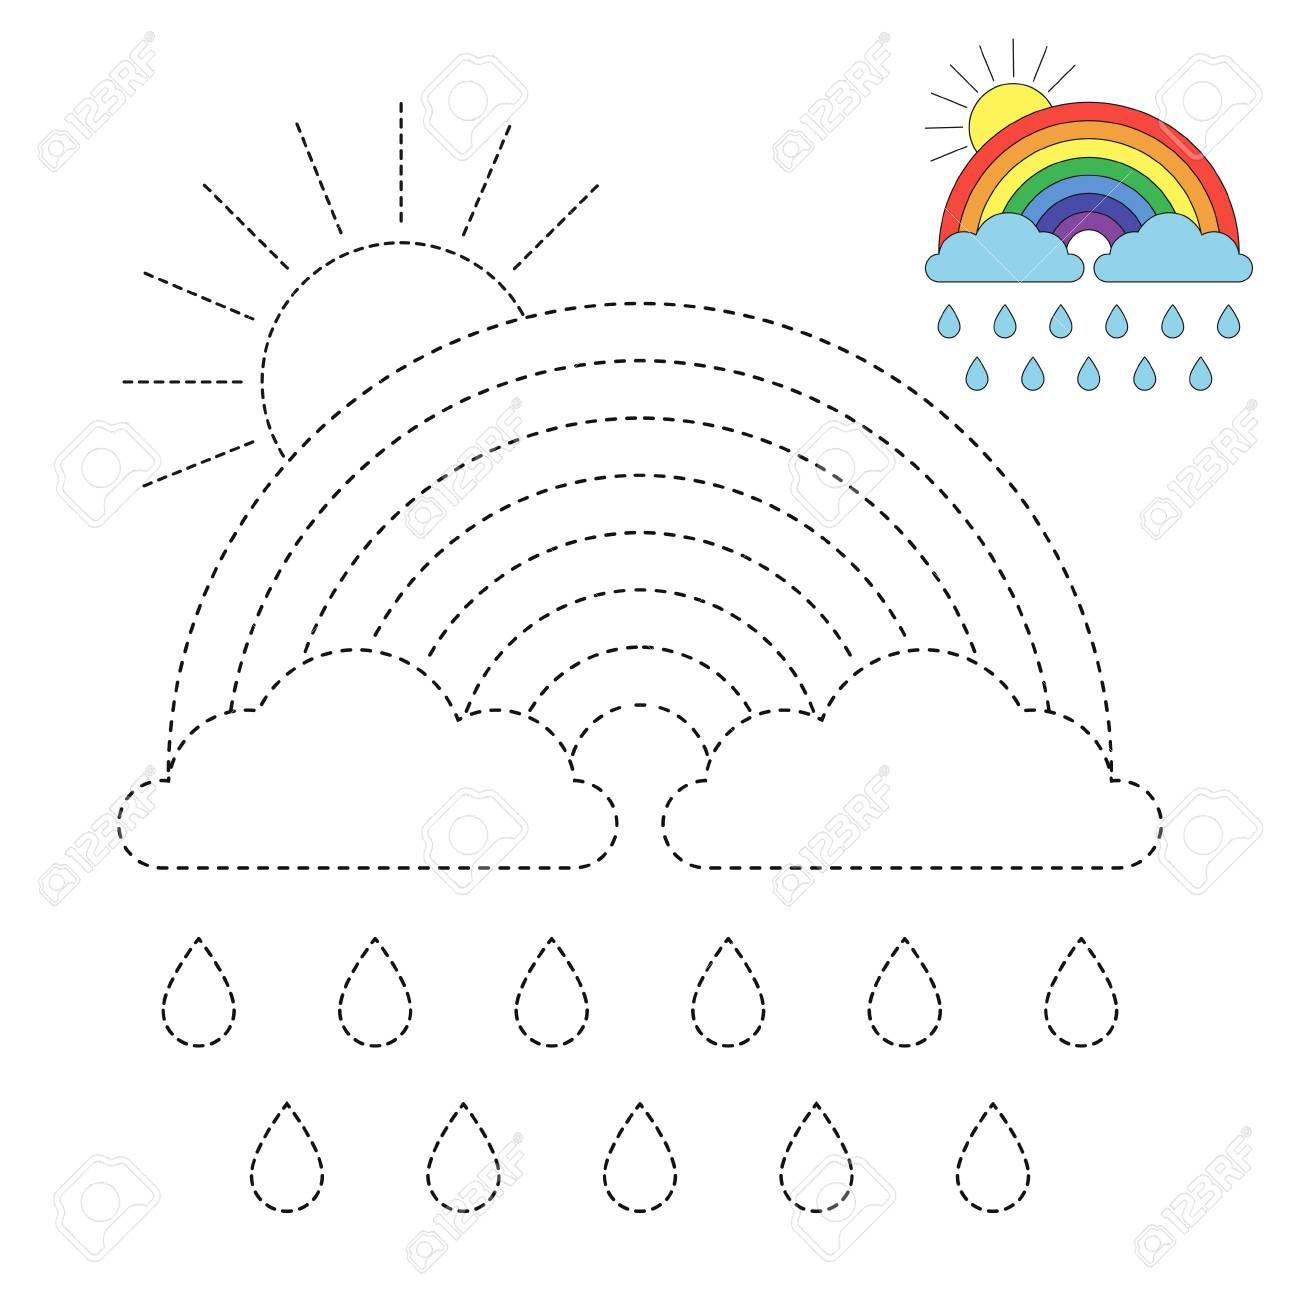 Rainbow Worksheets Preschool Vector Drawing Worksheet for Kids Simple Educational Game